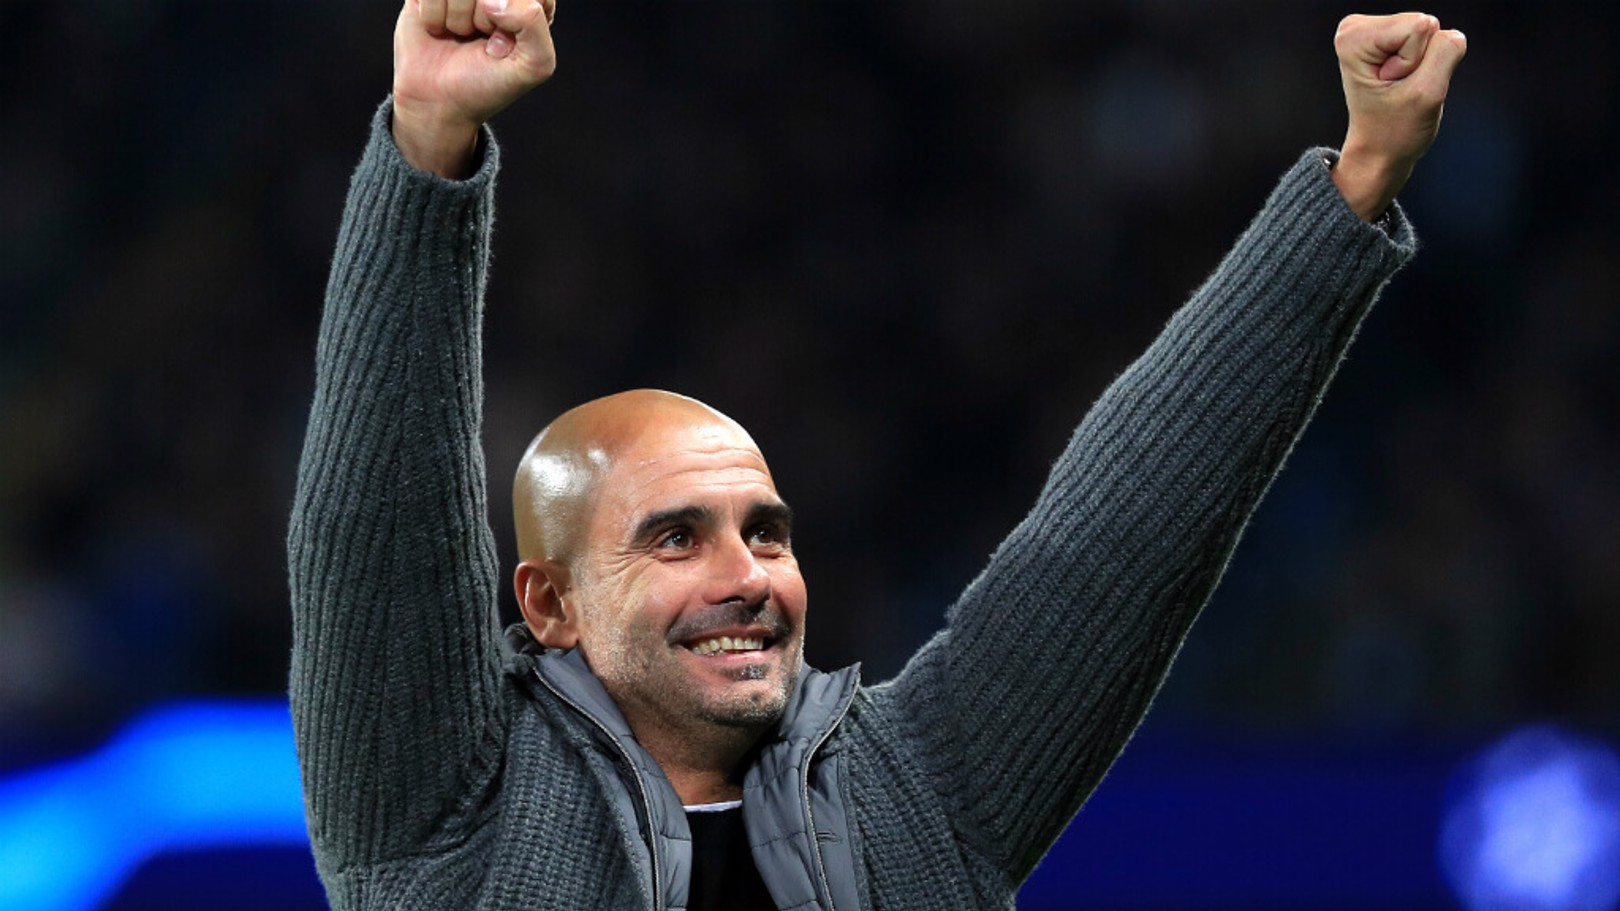 PLEASED AS PUNCH: Pep Guardiola expressed his delight, after City's 6-0 triumph over Shakhtar Donetsk...